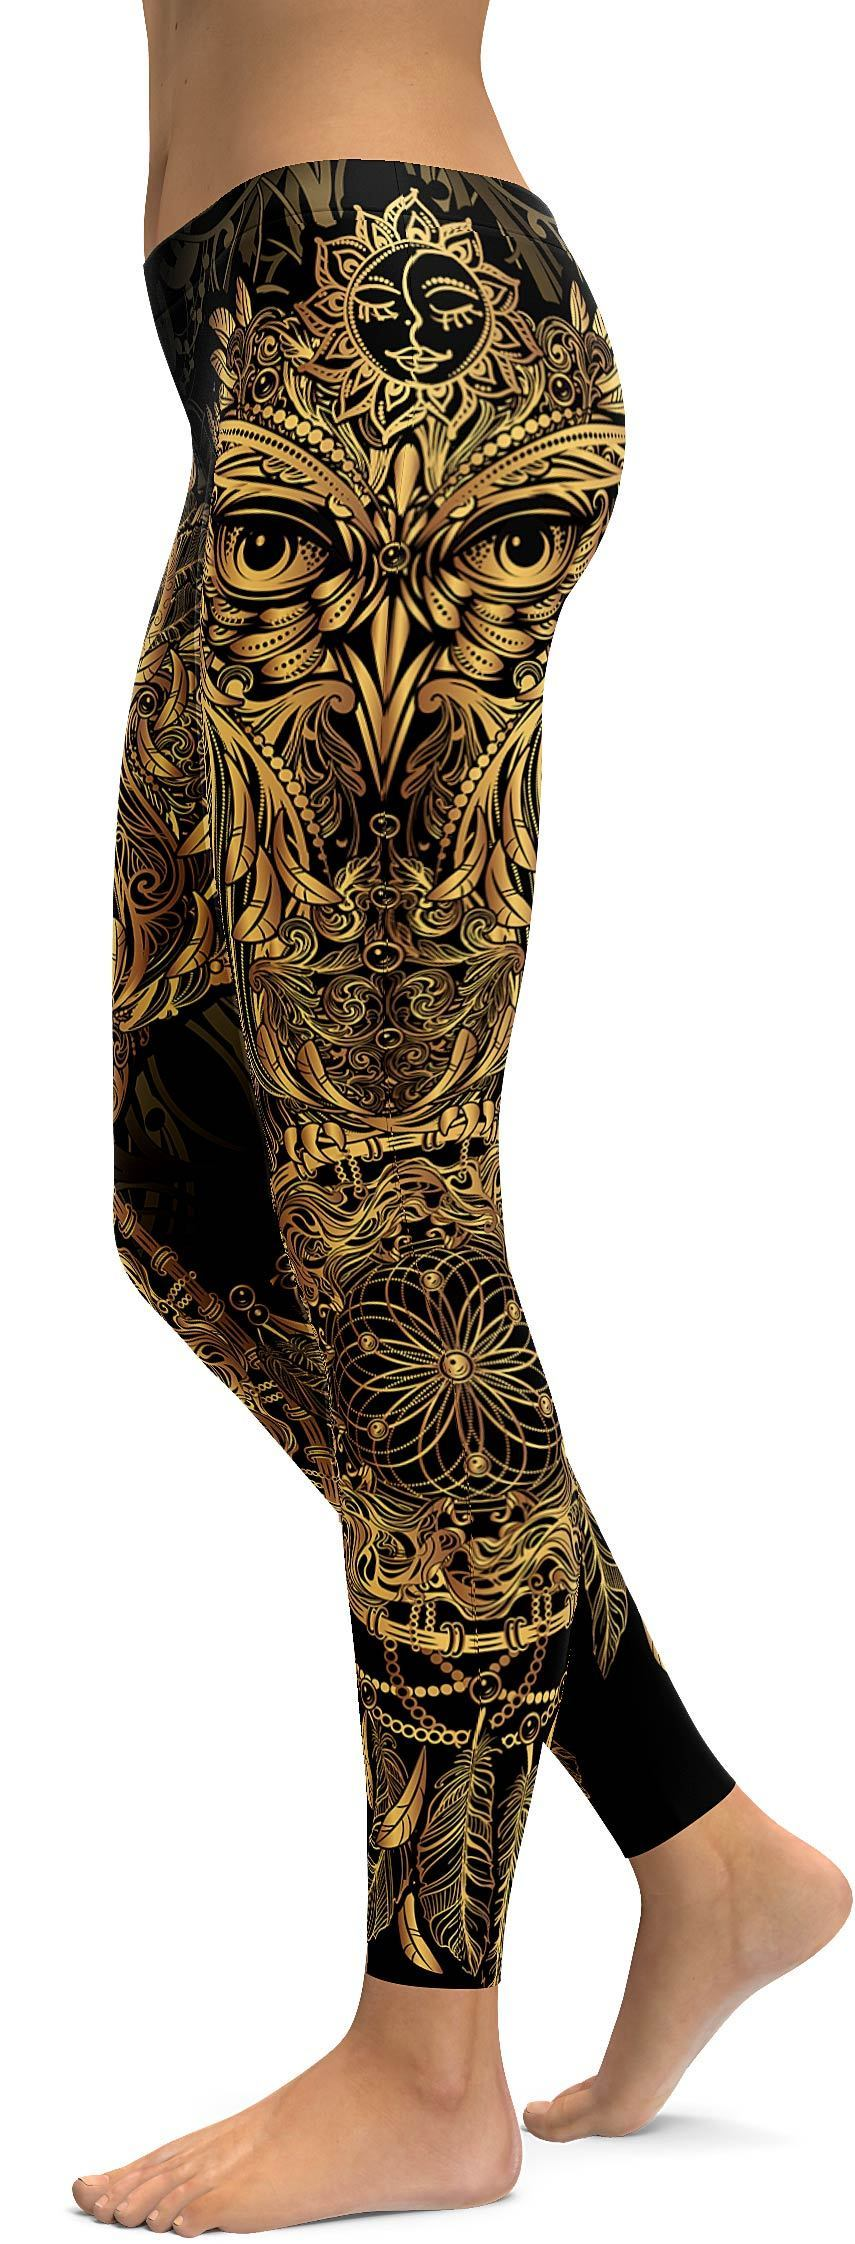 Buy 2 Worldwide Free SHIPPING—Golden Ornamental Owl Leggings